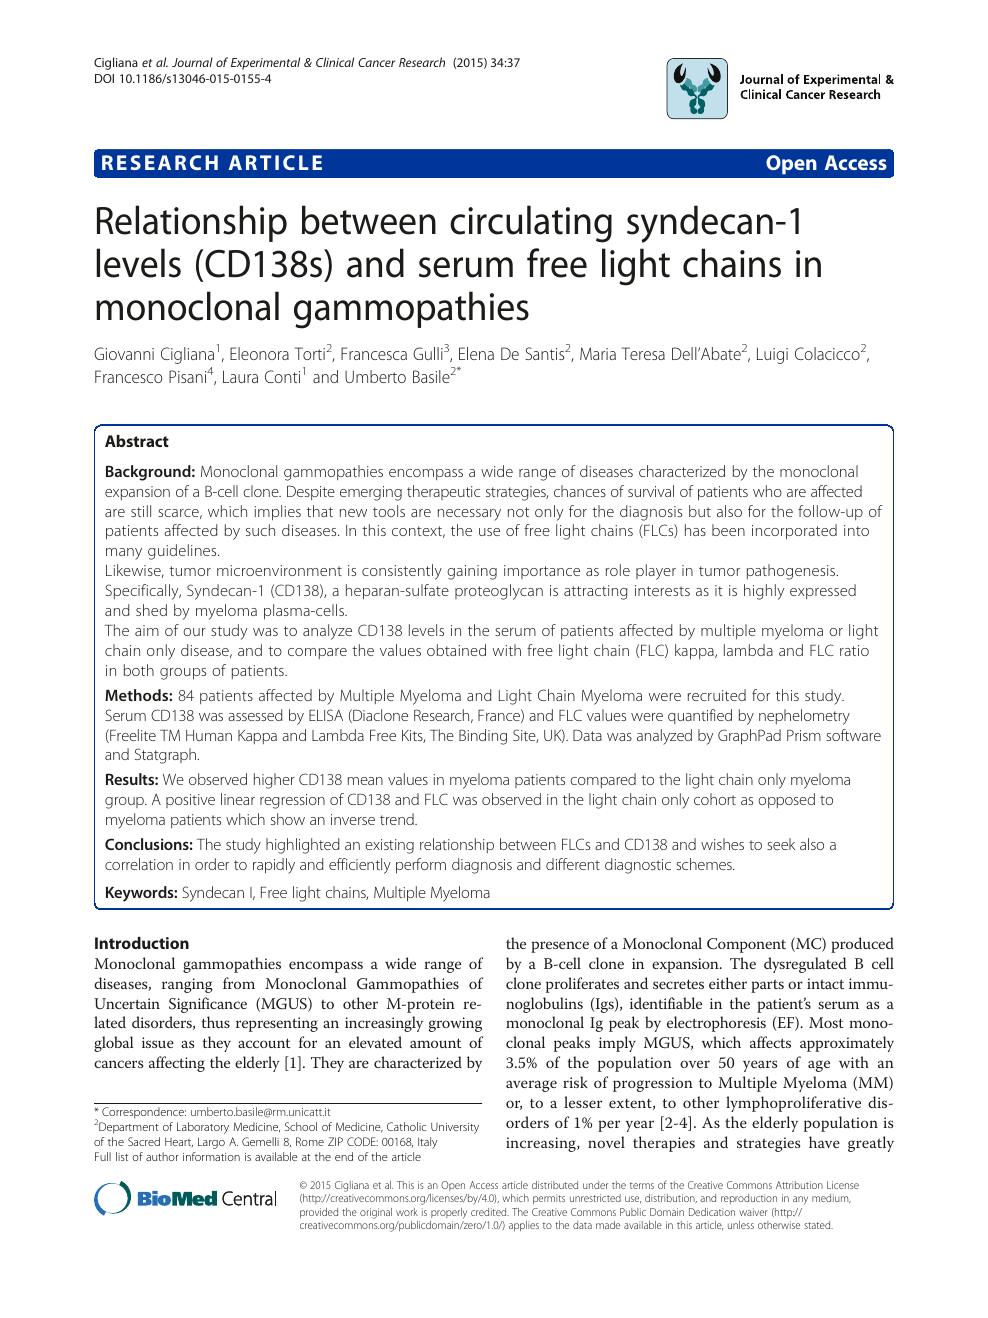 Relationship between circulating syndecan-1 levels (CD138s) and